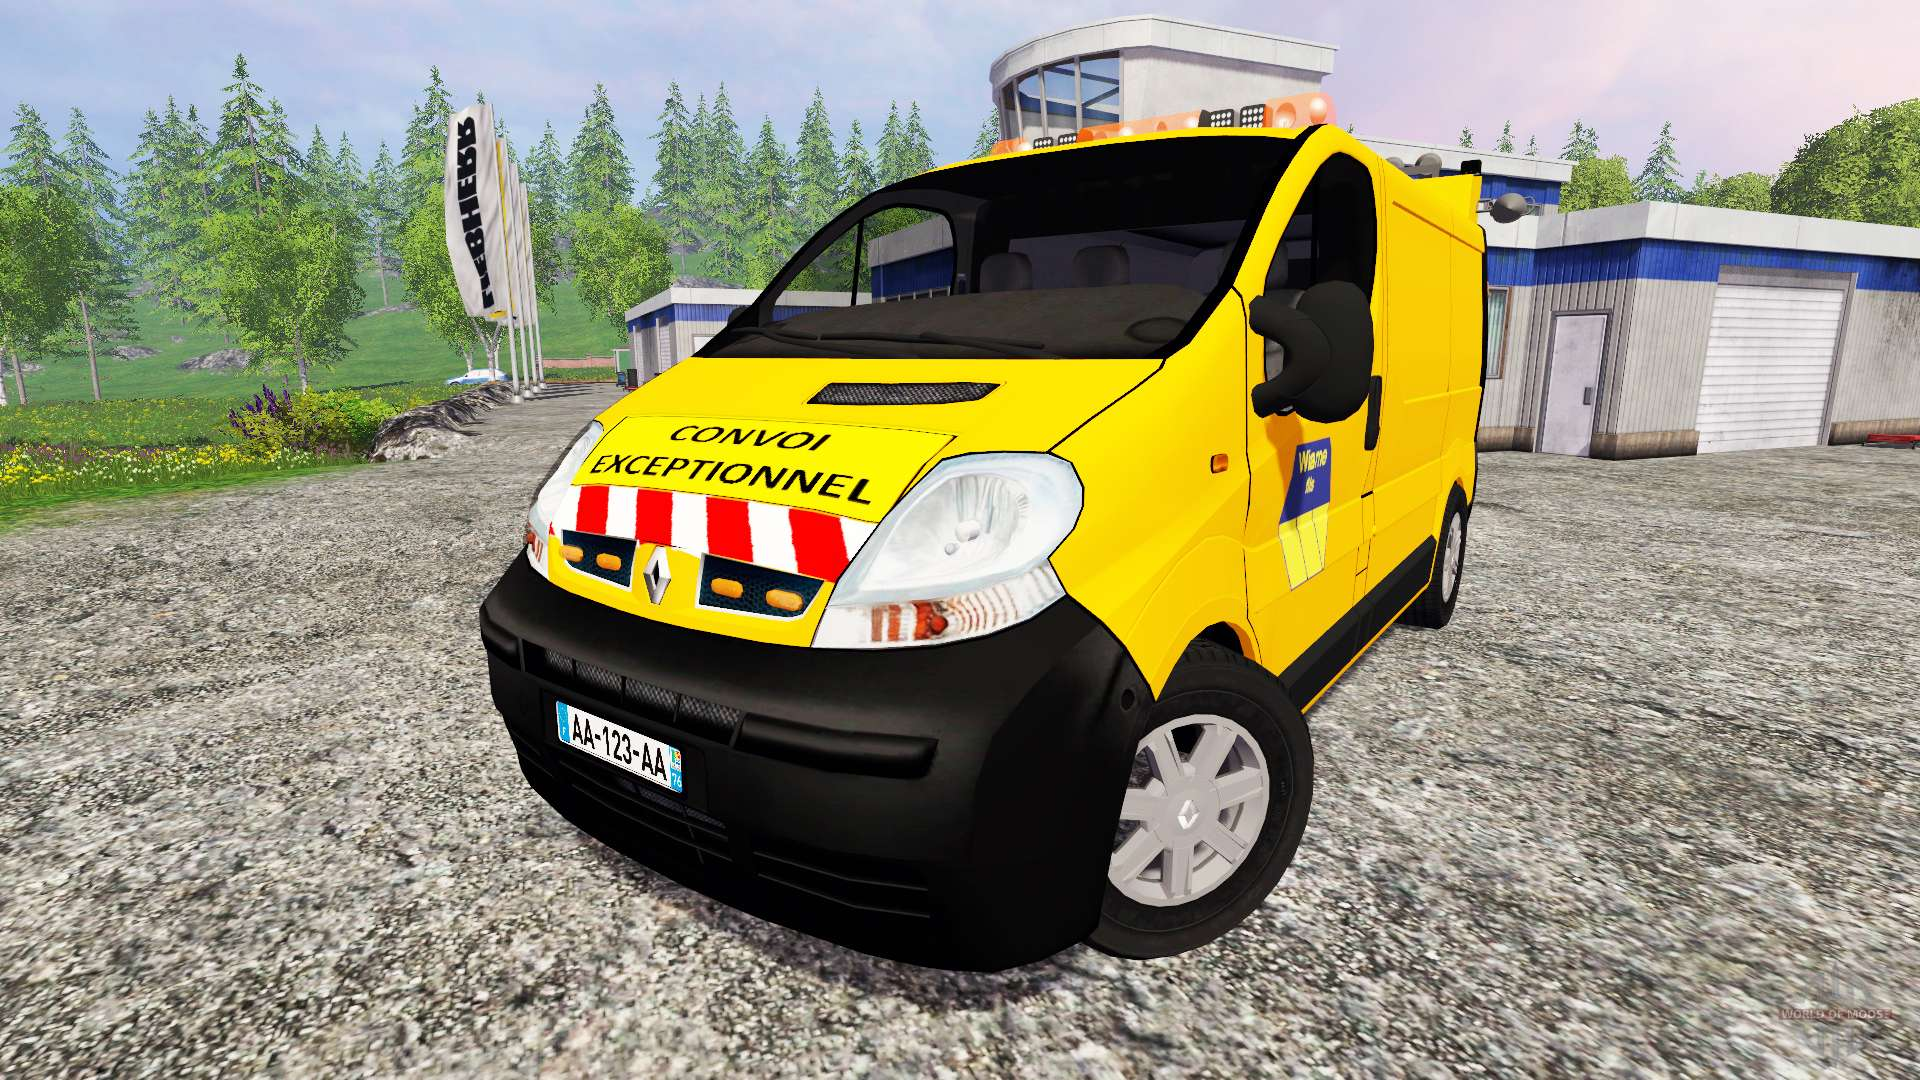 renault trafic convoi exceptionel for farming simulator 2015. Black Bedroom Furniture Sets. Home Design Ideas